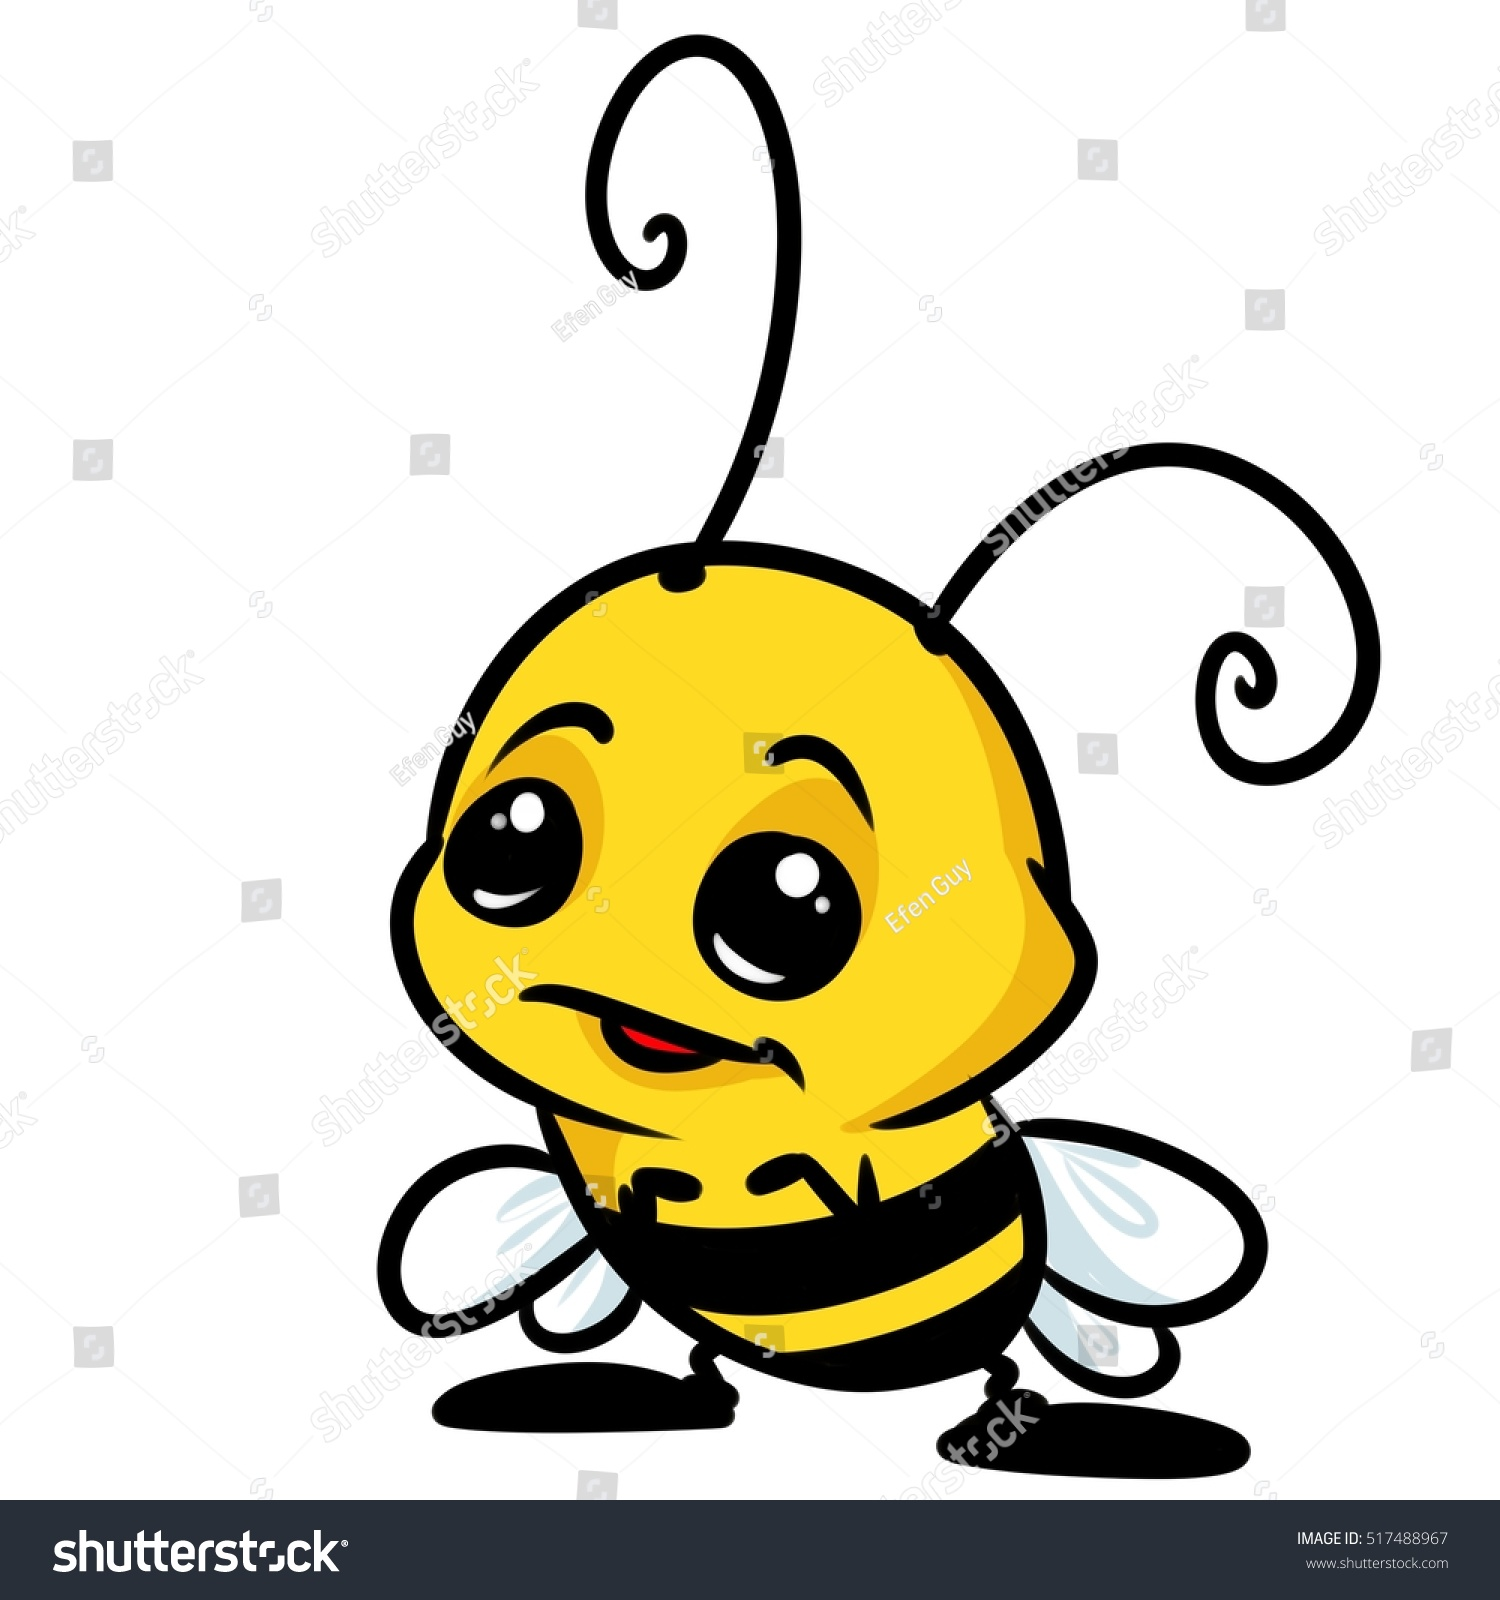 Best 25+ Bumble bee cartoon ideas on Pinterest | Bumble ...